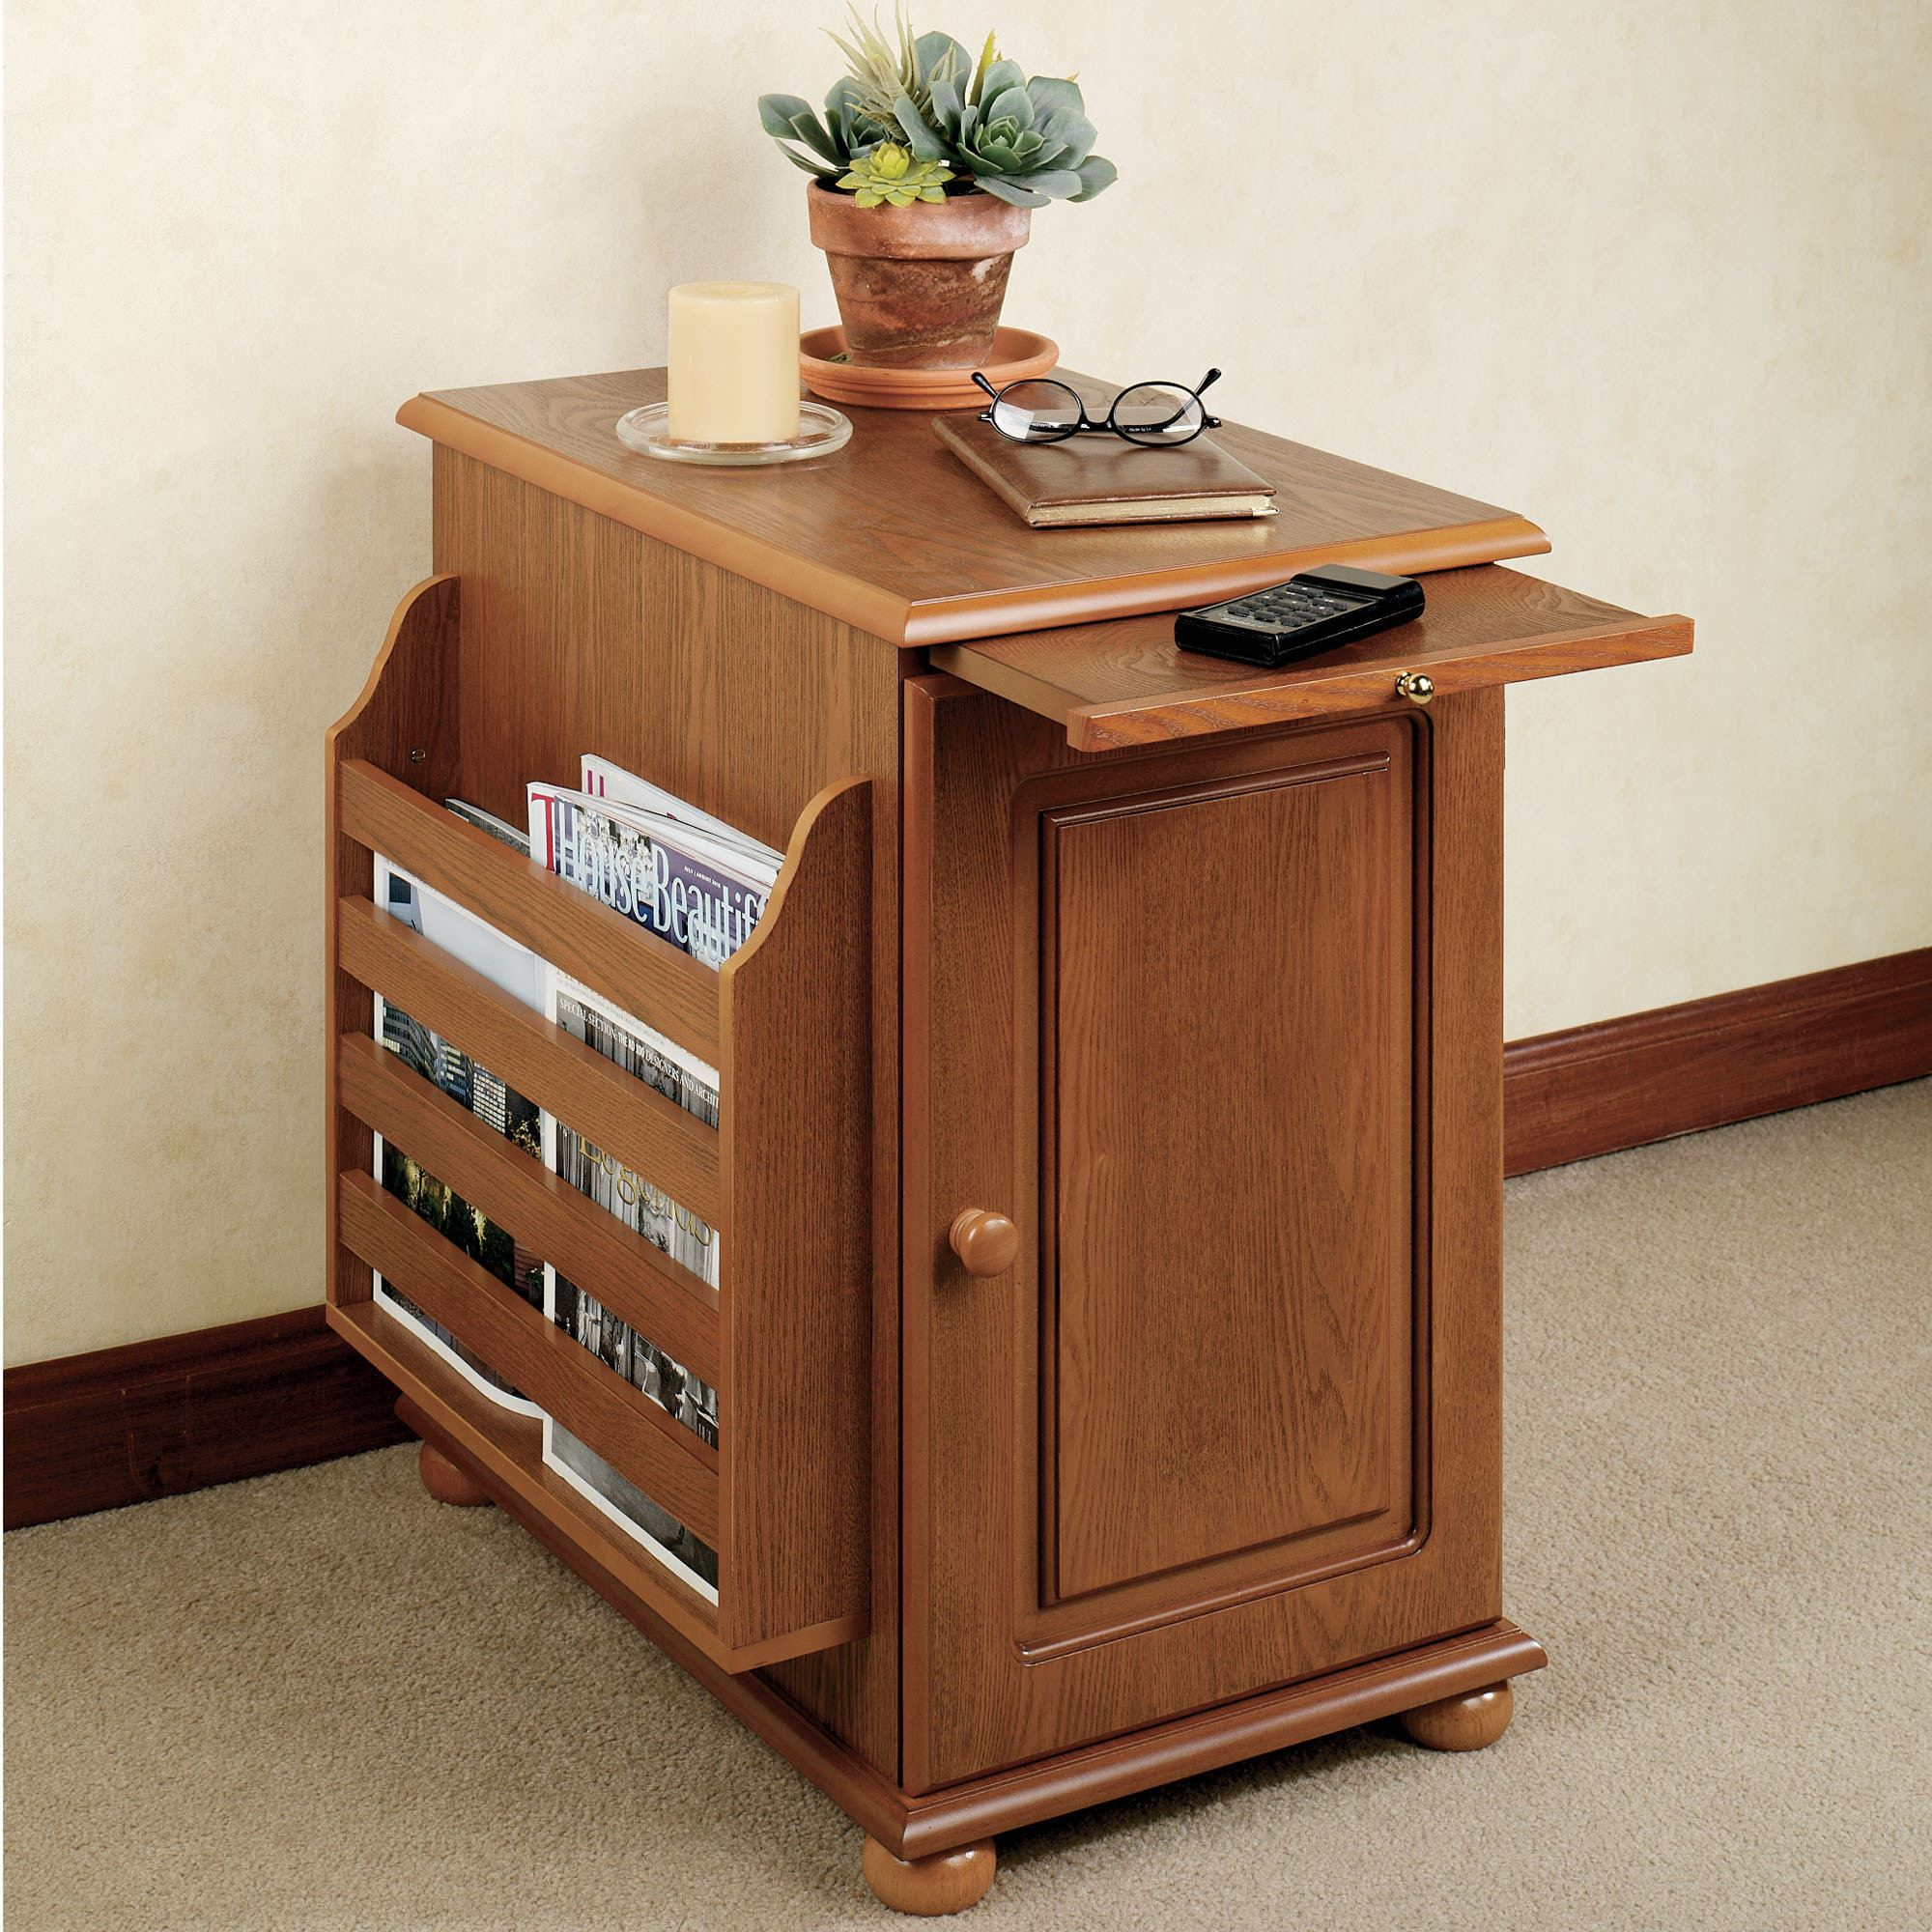 small end tables with drawers ideas interior segomego accent table narrow smart storage single door cabinet pull out pertaining plan basket plant pedestal square marble top dining